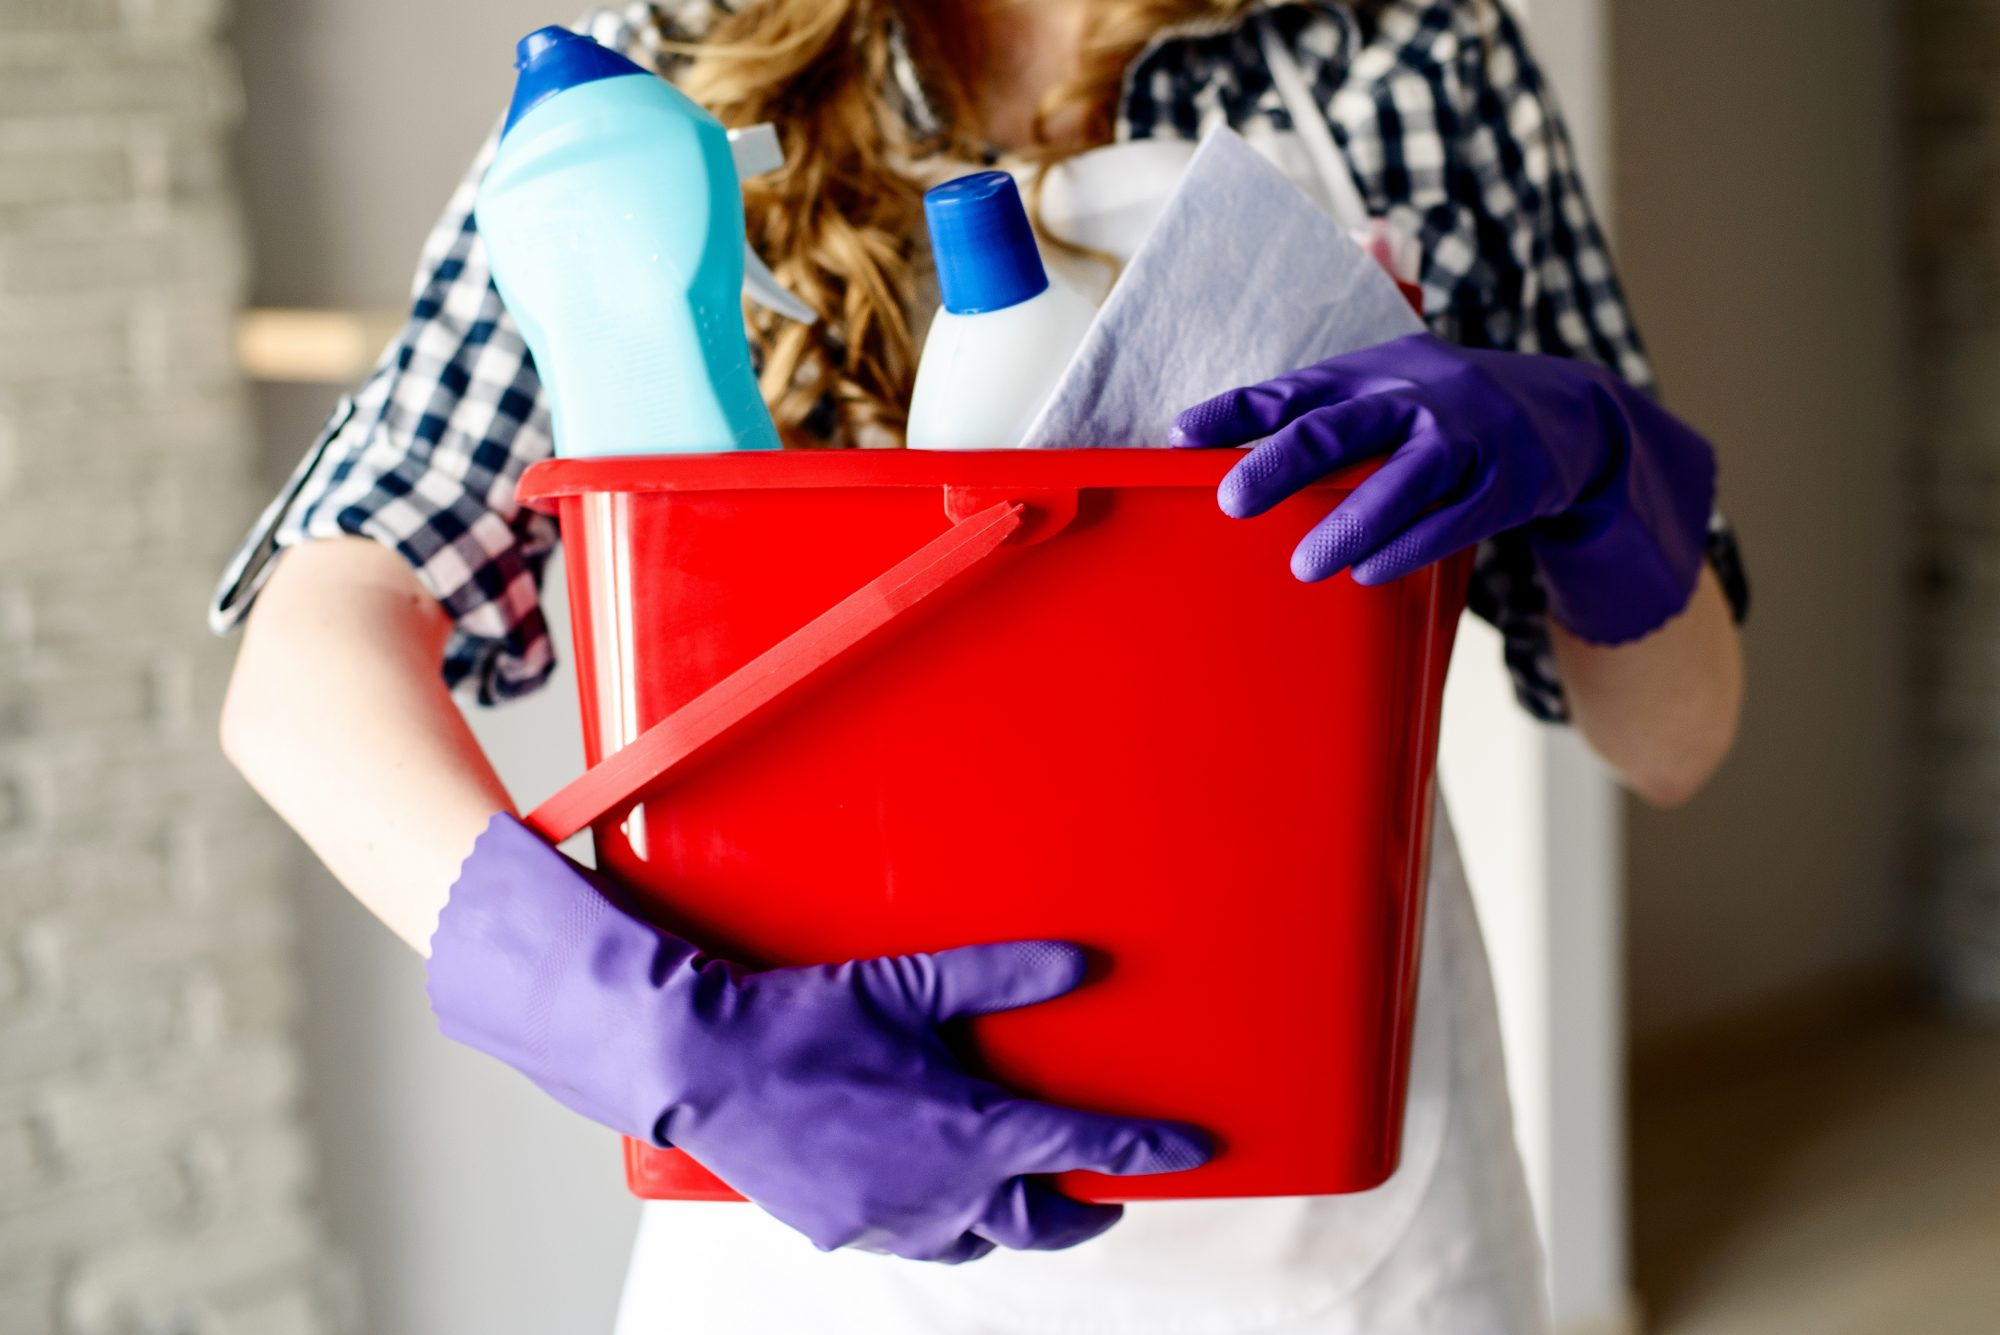 Woman Holding Cleaning Supplies Bucket